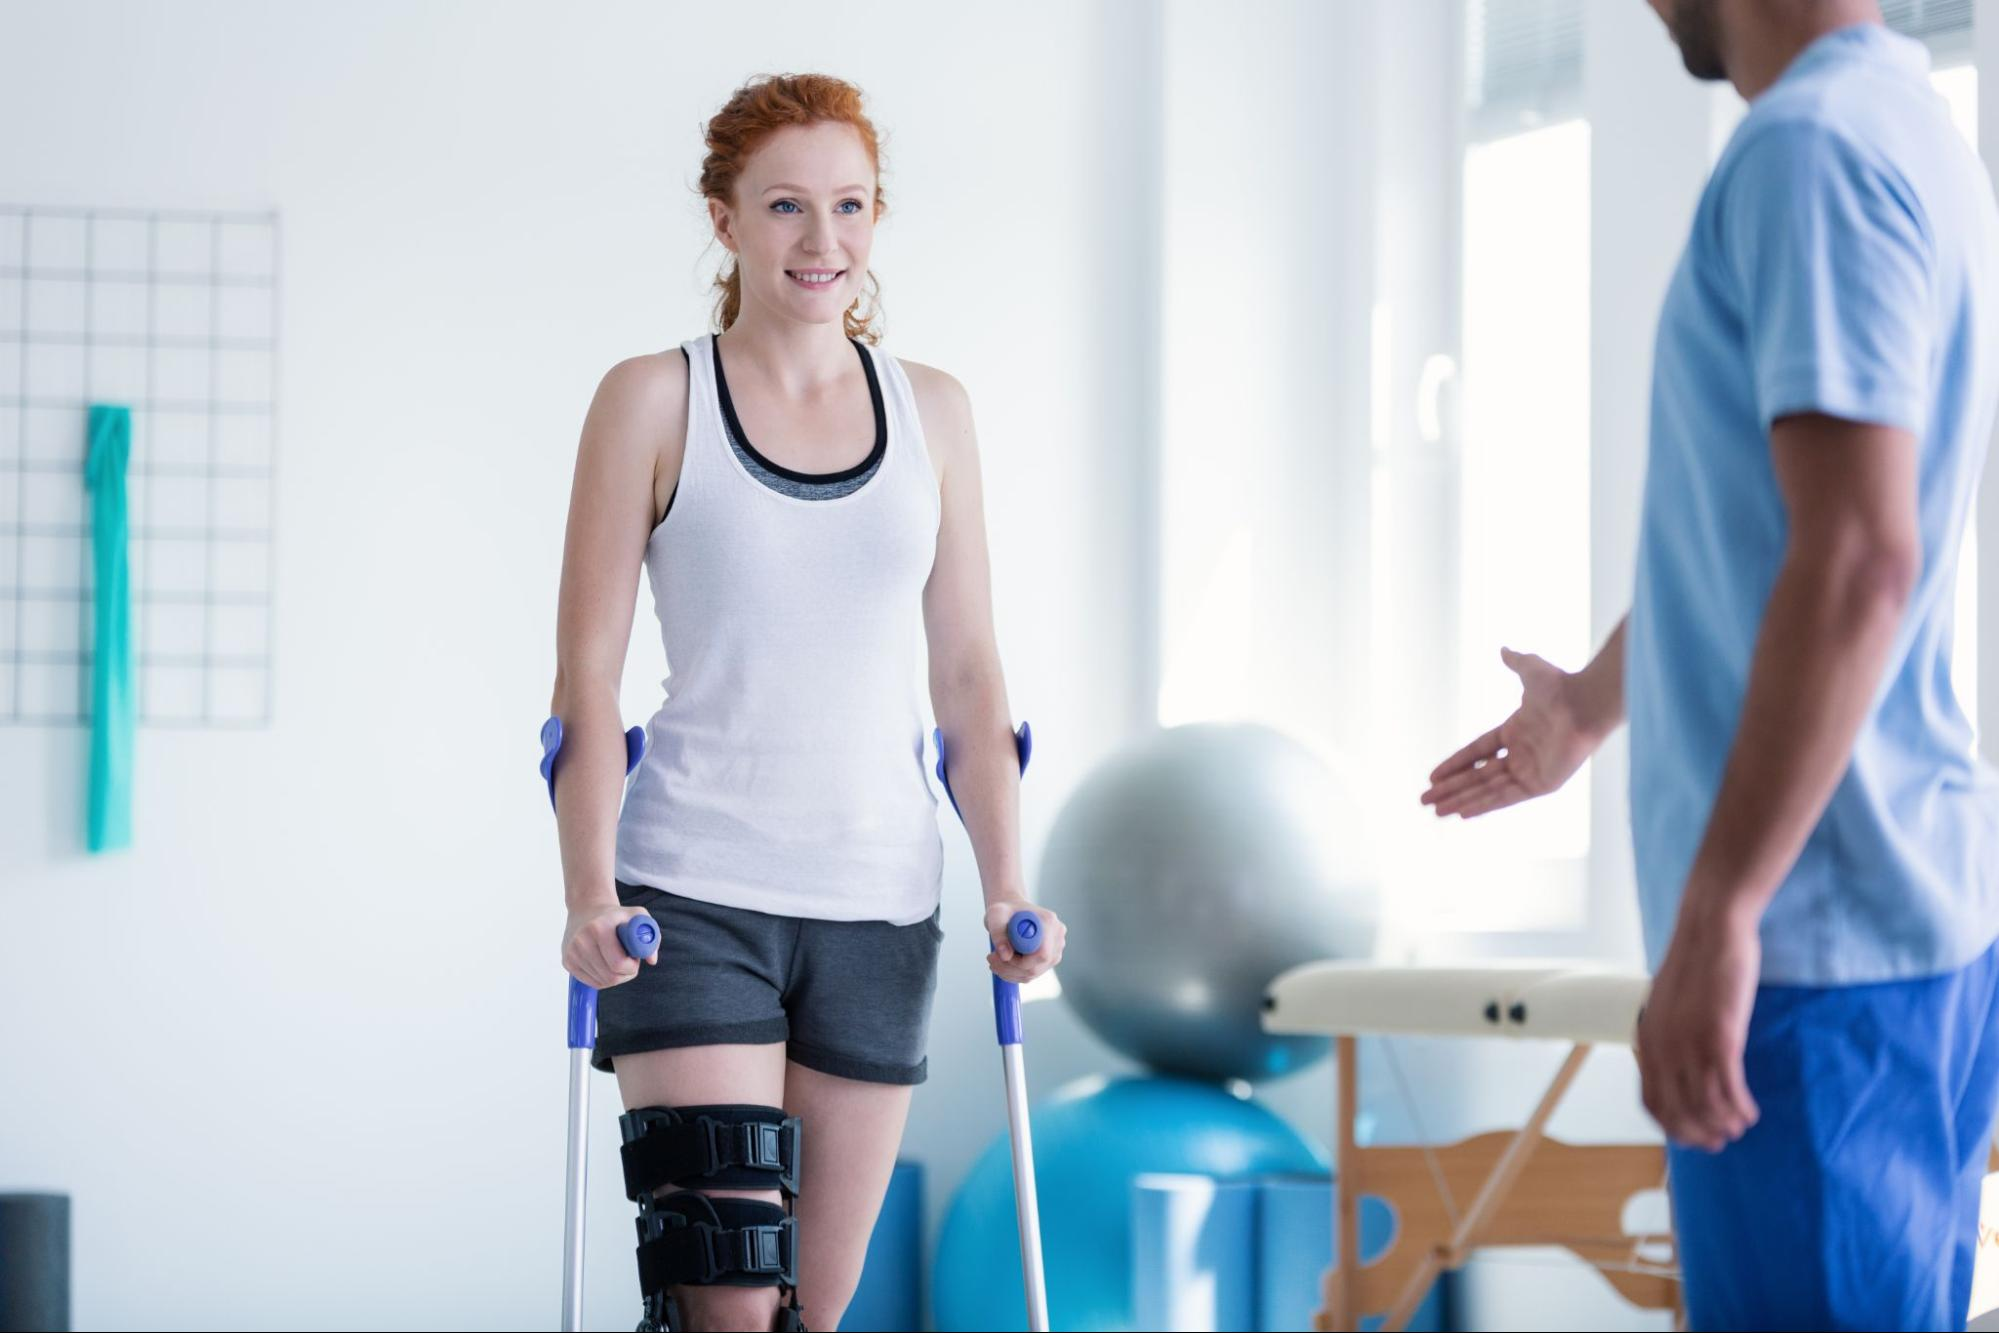 Woman walking with crutches during a physical therapy session